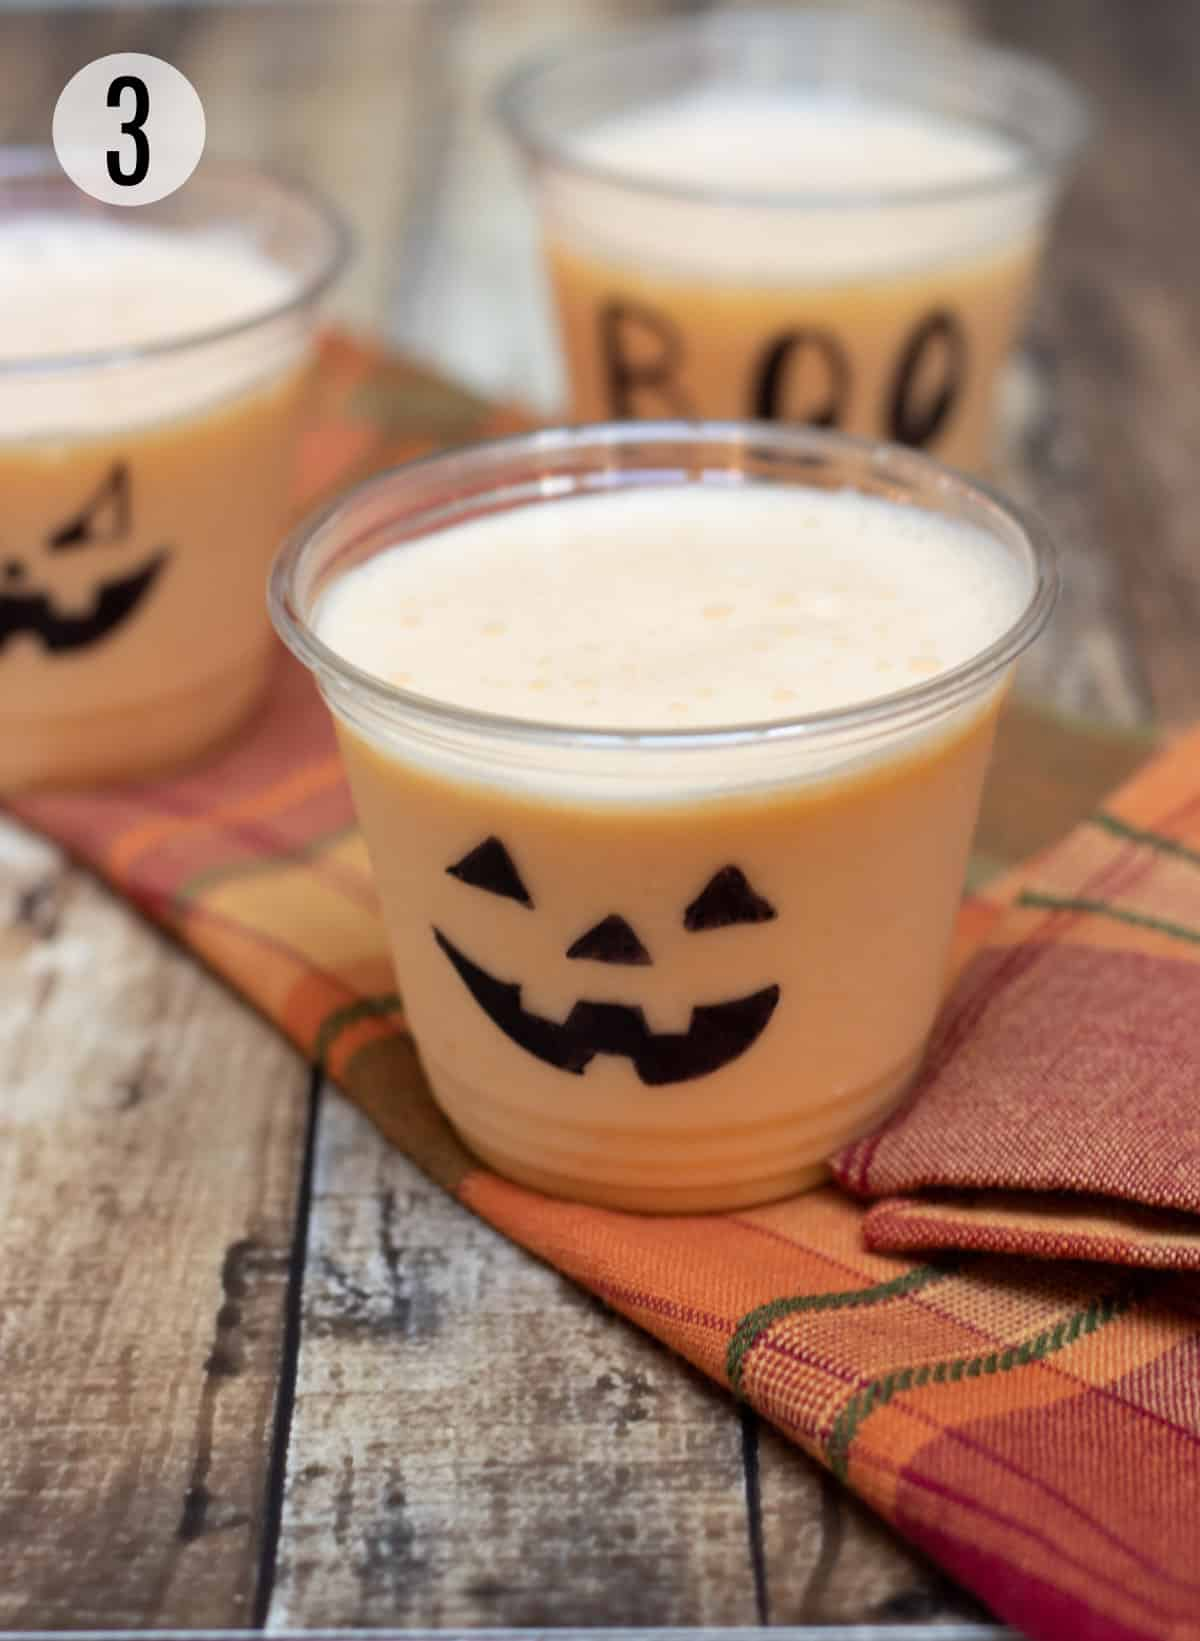 Clear cups decorated with jack-o-lantern faces and Halloween sayings filled with orange peach smoothie on an orange plaid napkin.